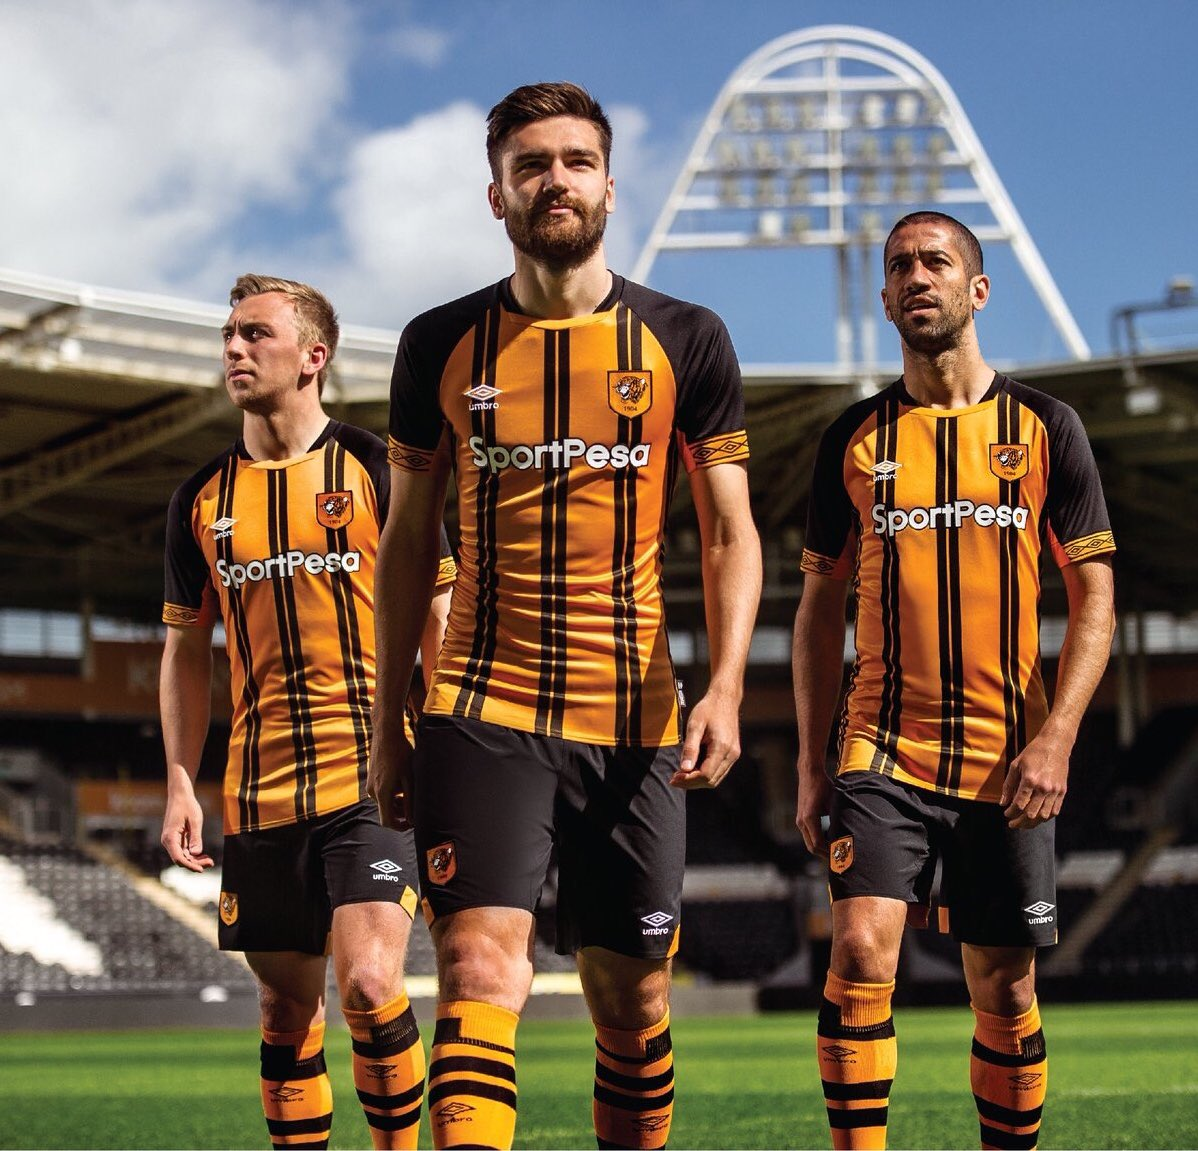 7b7f56806ad Hull City AFC Reveal Their 2018/19 Home Kit by Umbro